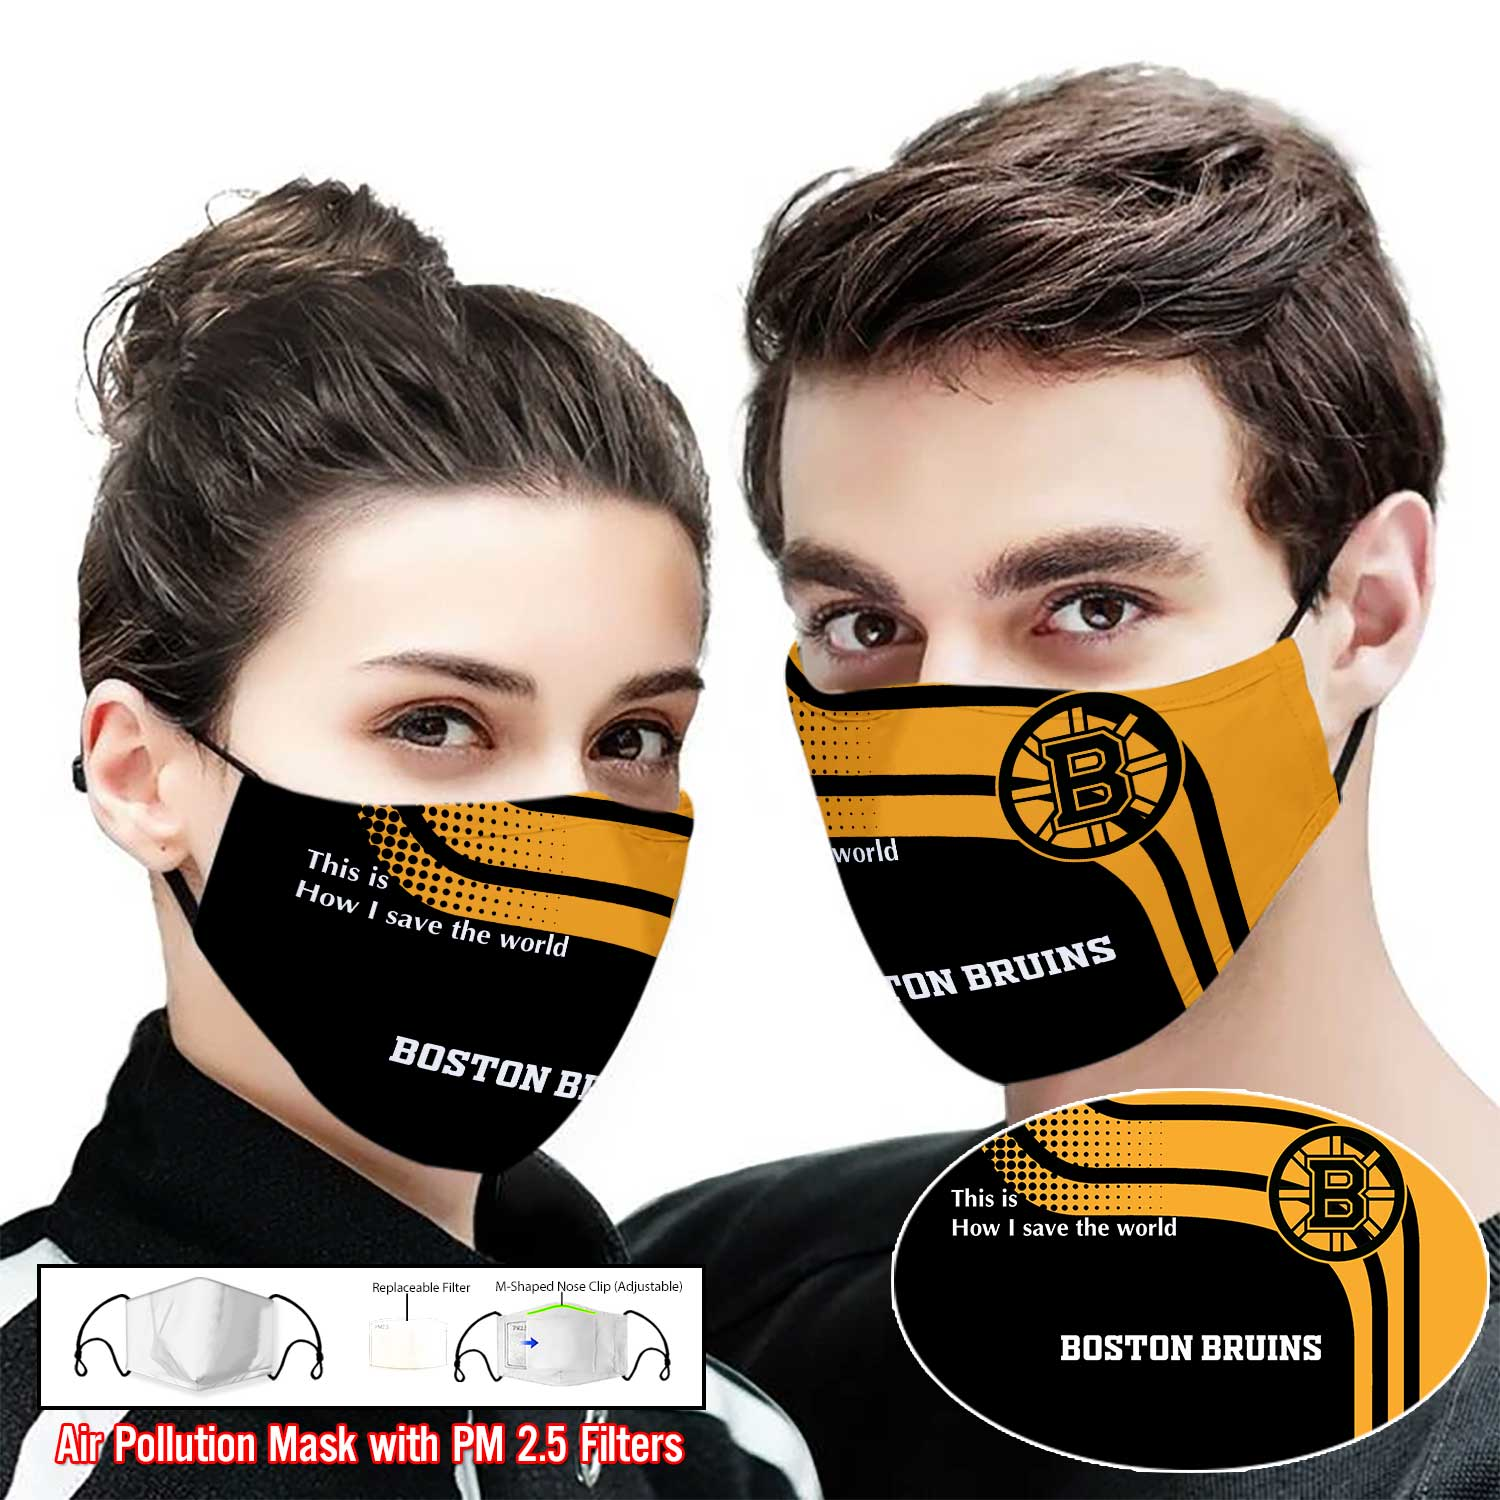 Boston bruins this is how i save the world full printing face mask 1